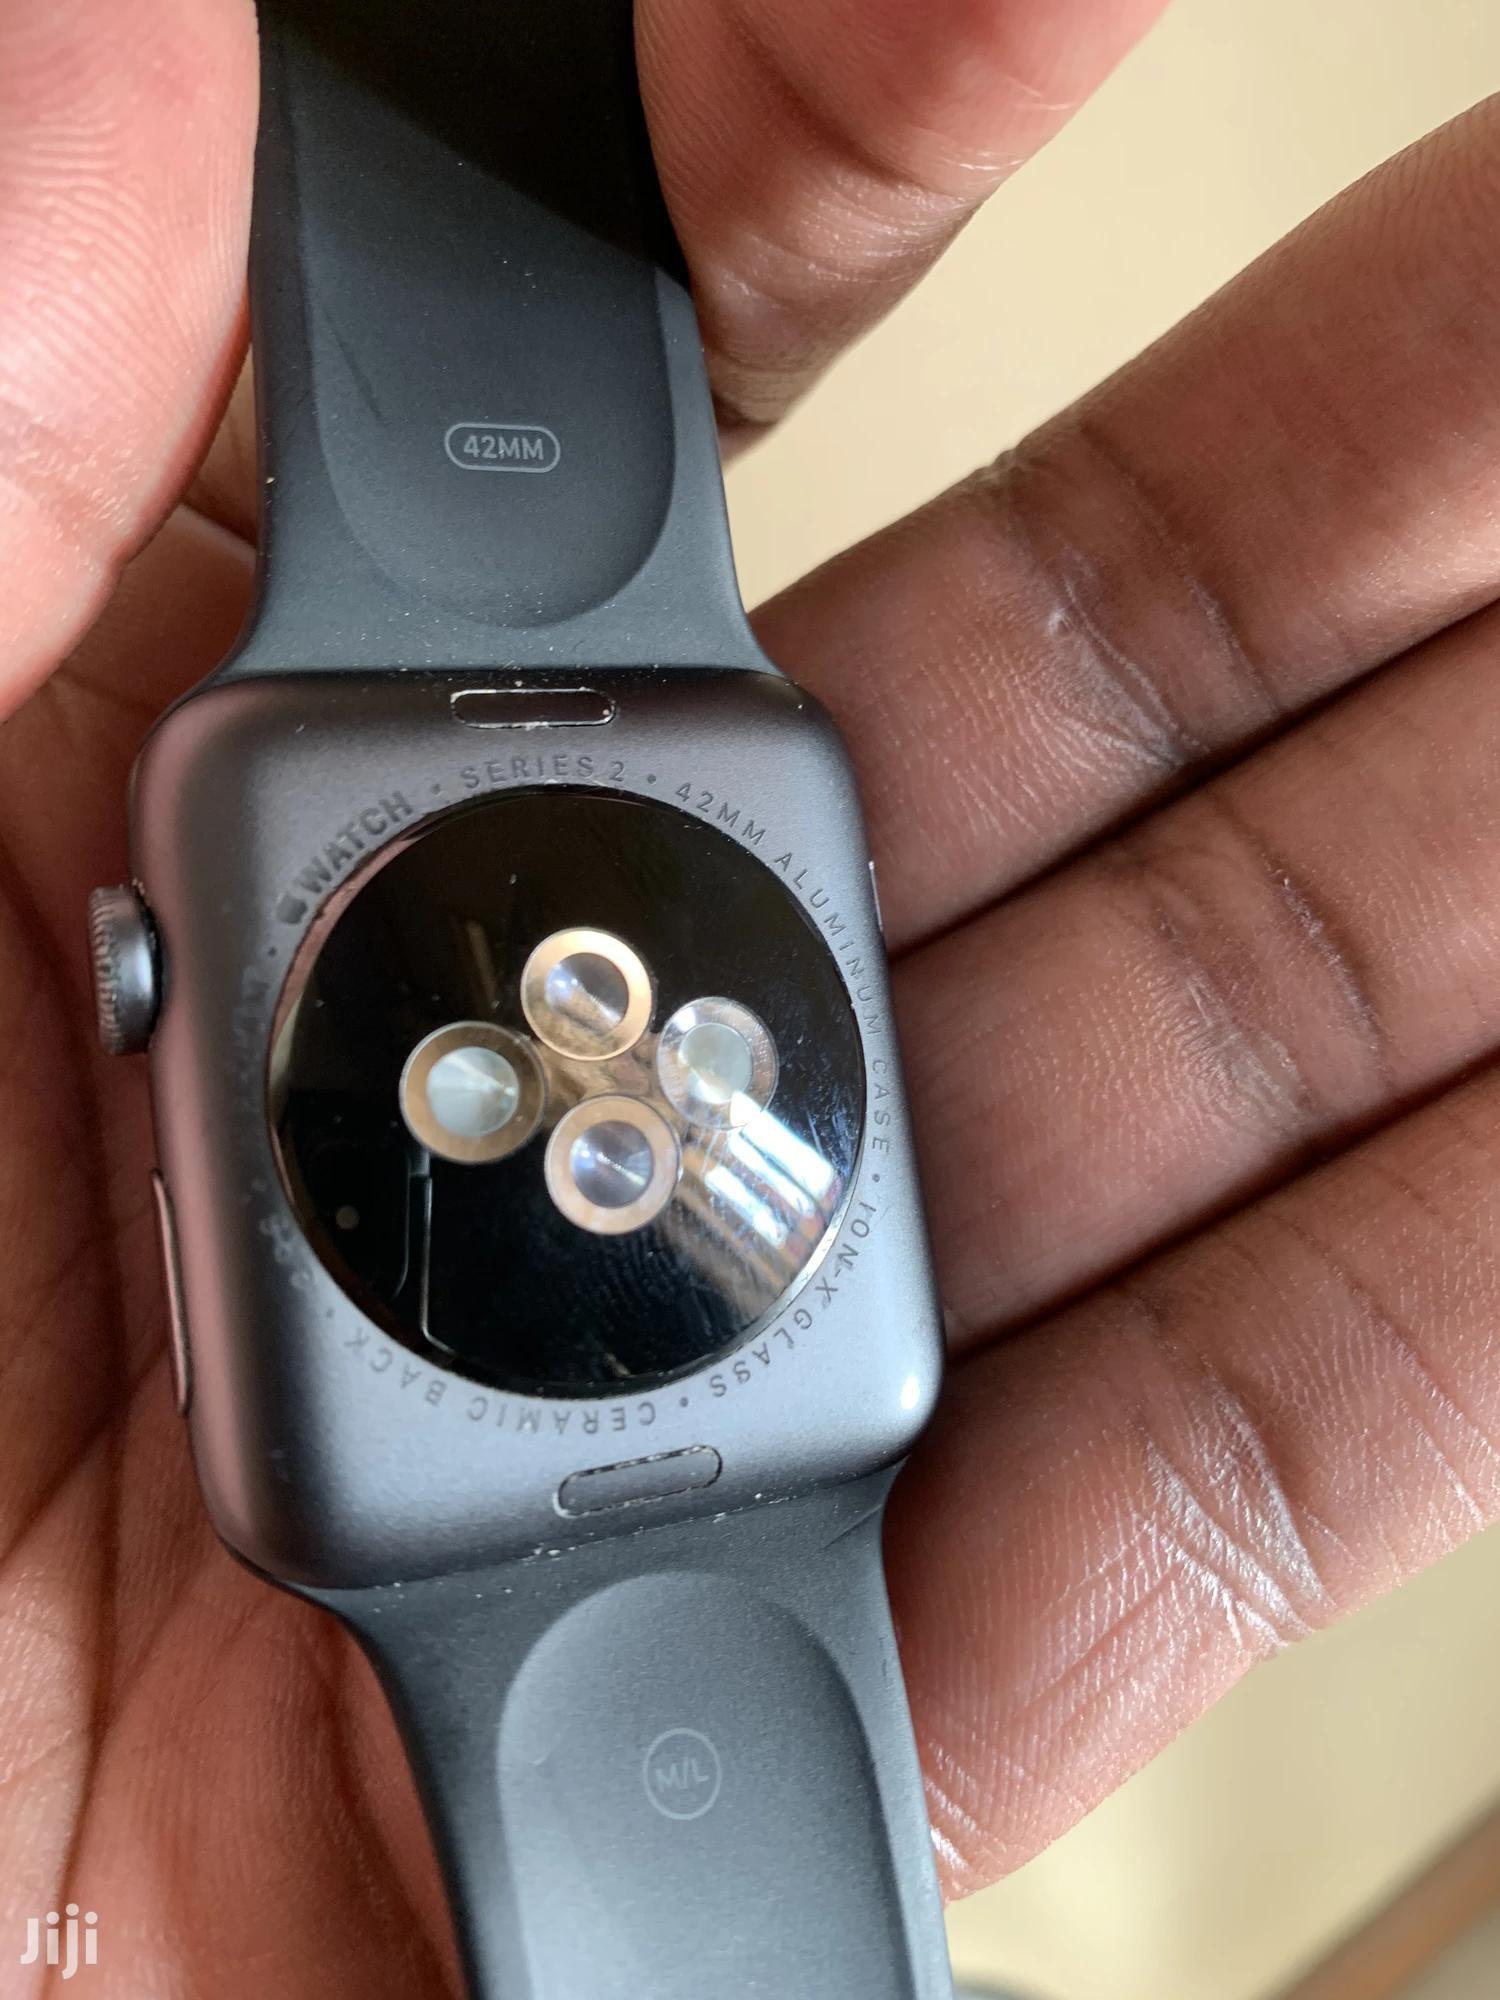 Apple Watch Series 2 Used In Good Shape | Smart Watches & Trackers for sale in Kampala, Central Region, Uganda